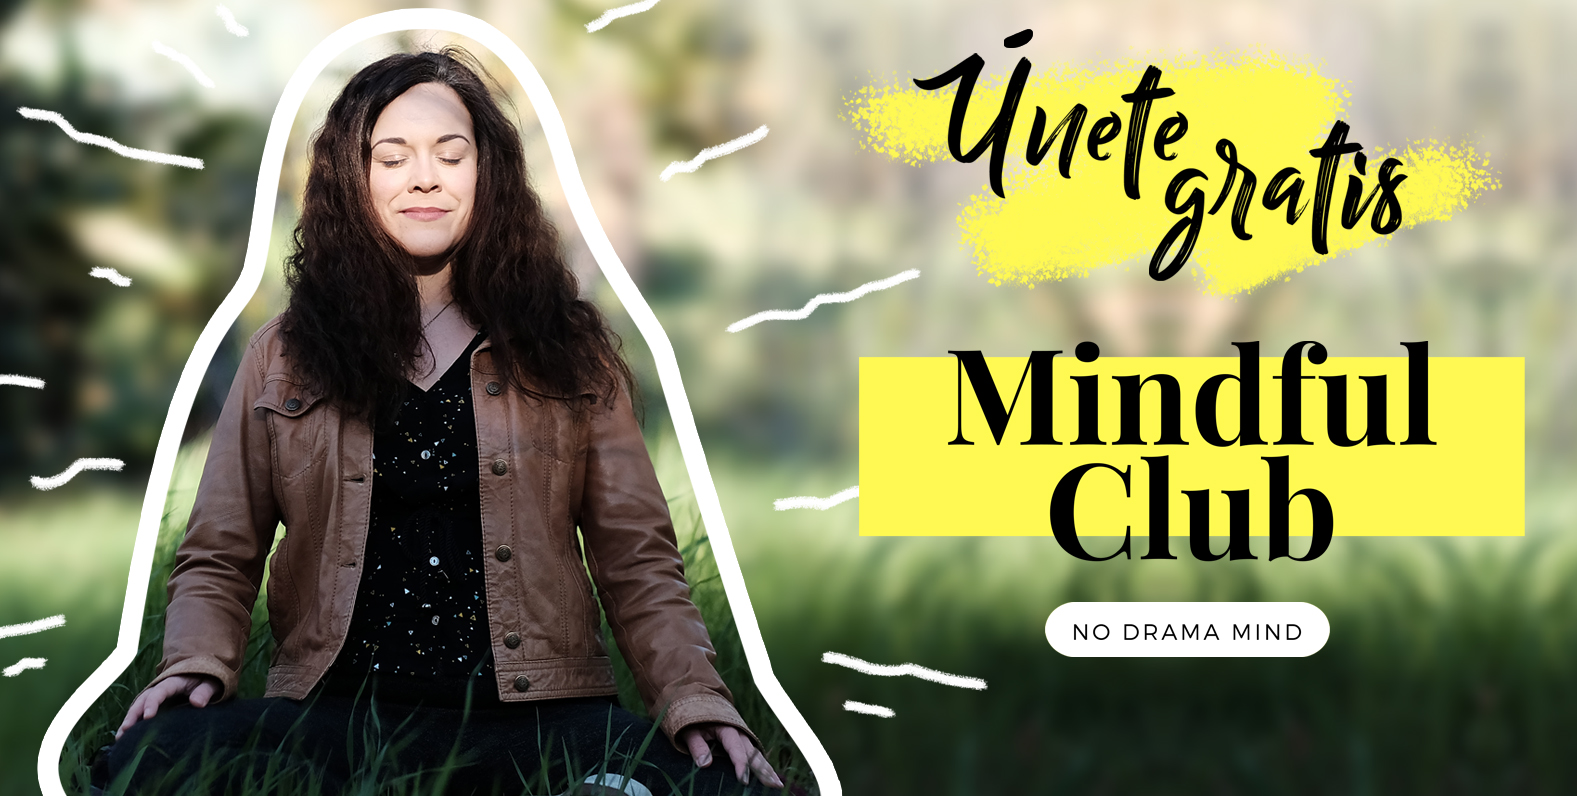 club mindfulness